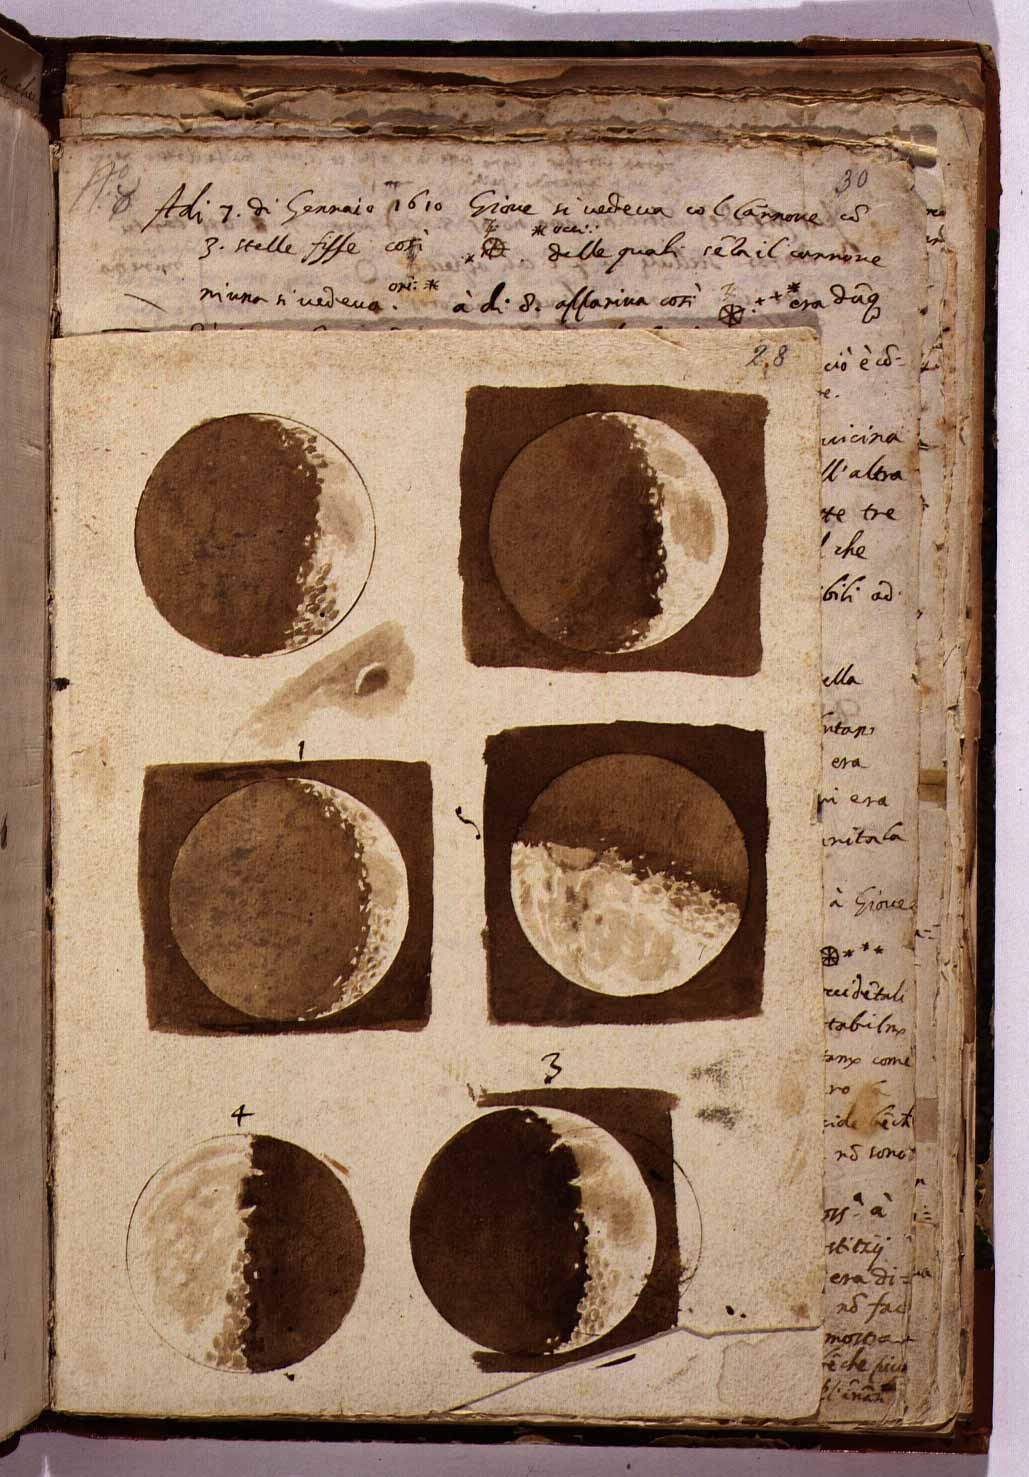 1910-again:  Drawings of the moon by Galileo Galilei, January 7, 1610